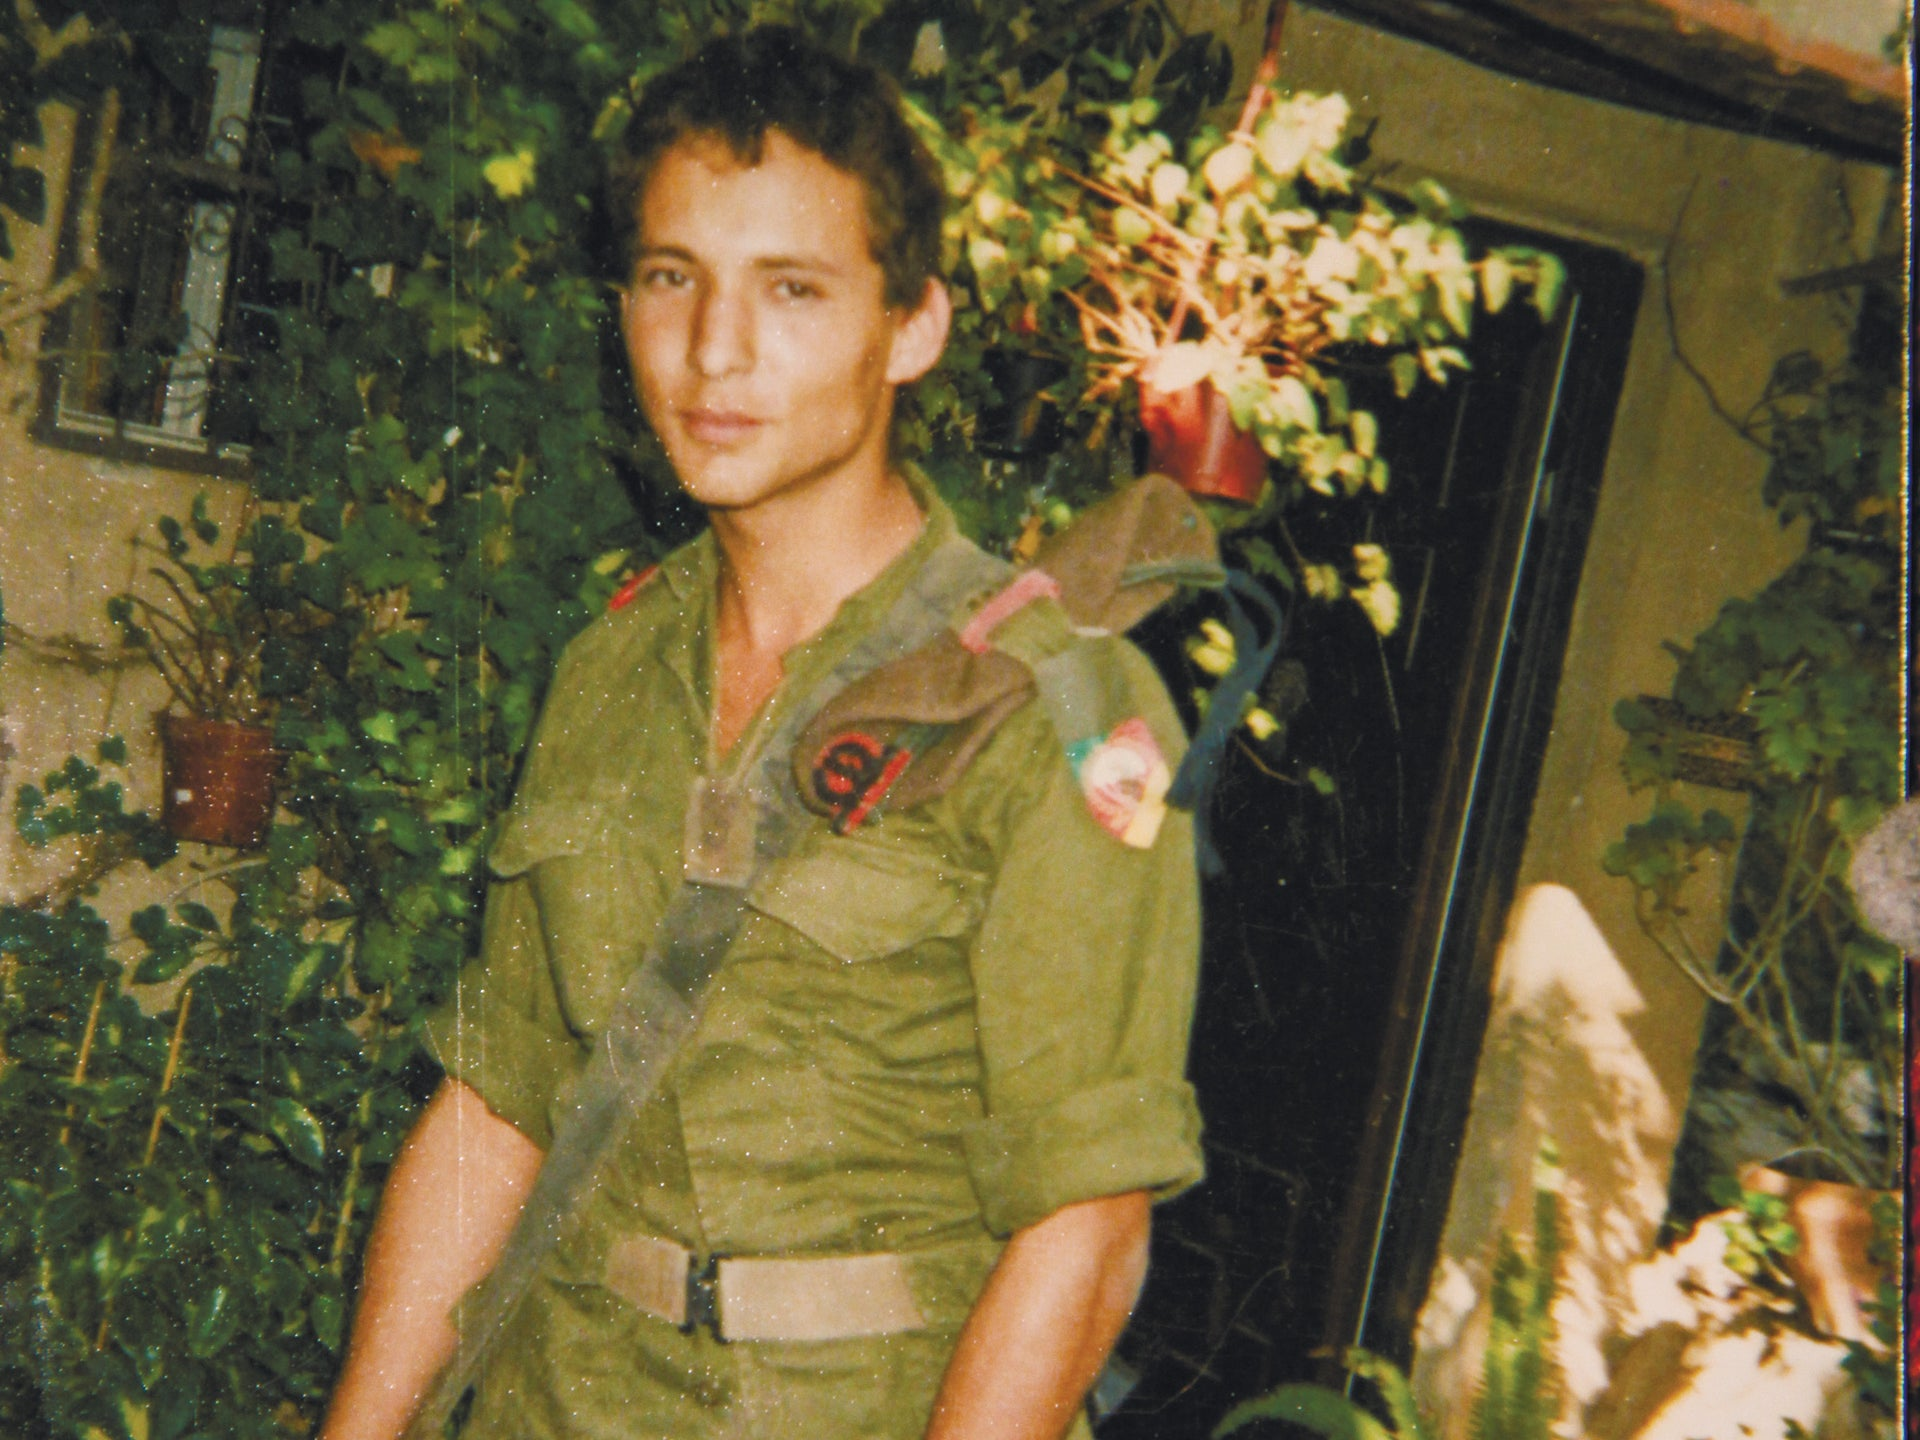 Naftali Bennett during his army service